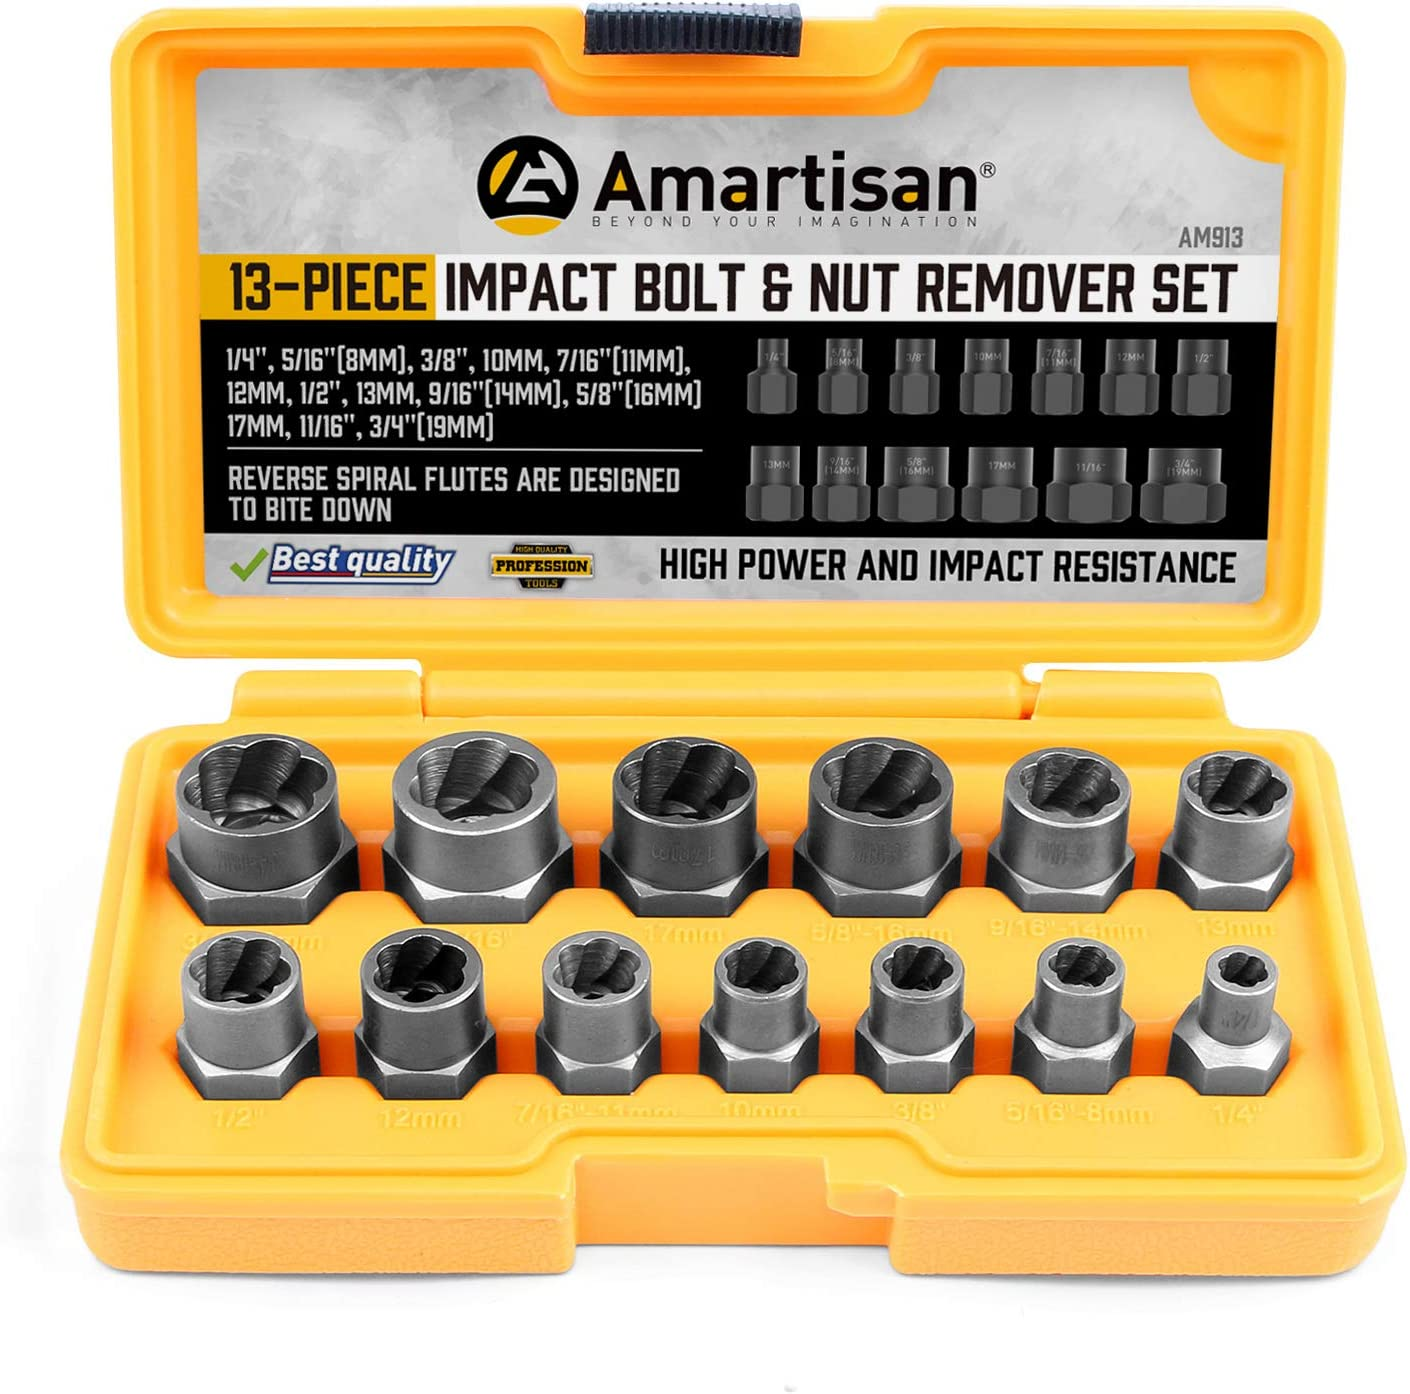 Aexit Metal Screw Tube Fittings Nut Extractors Handheld Removers Tool Set Microbore Tubing Connectors 6 Pieces